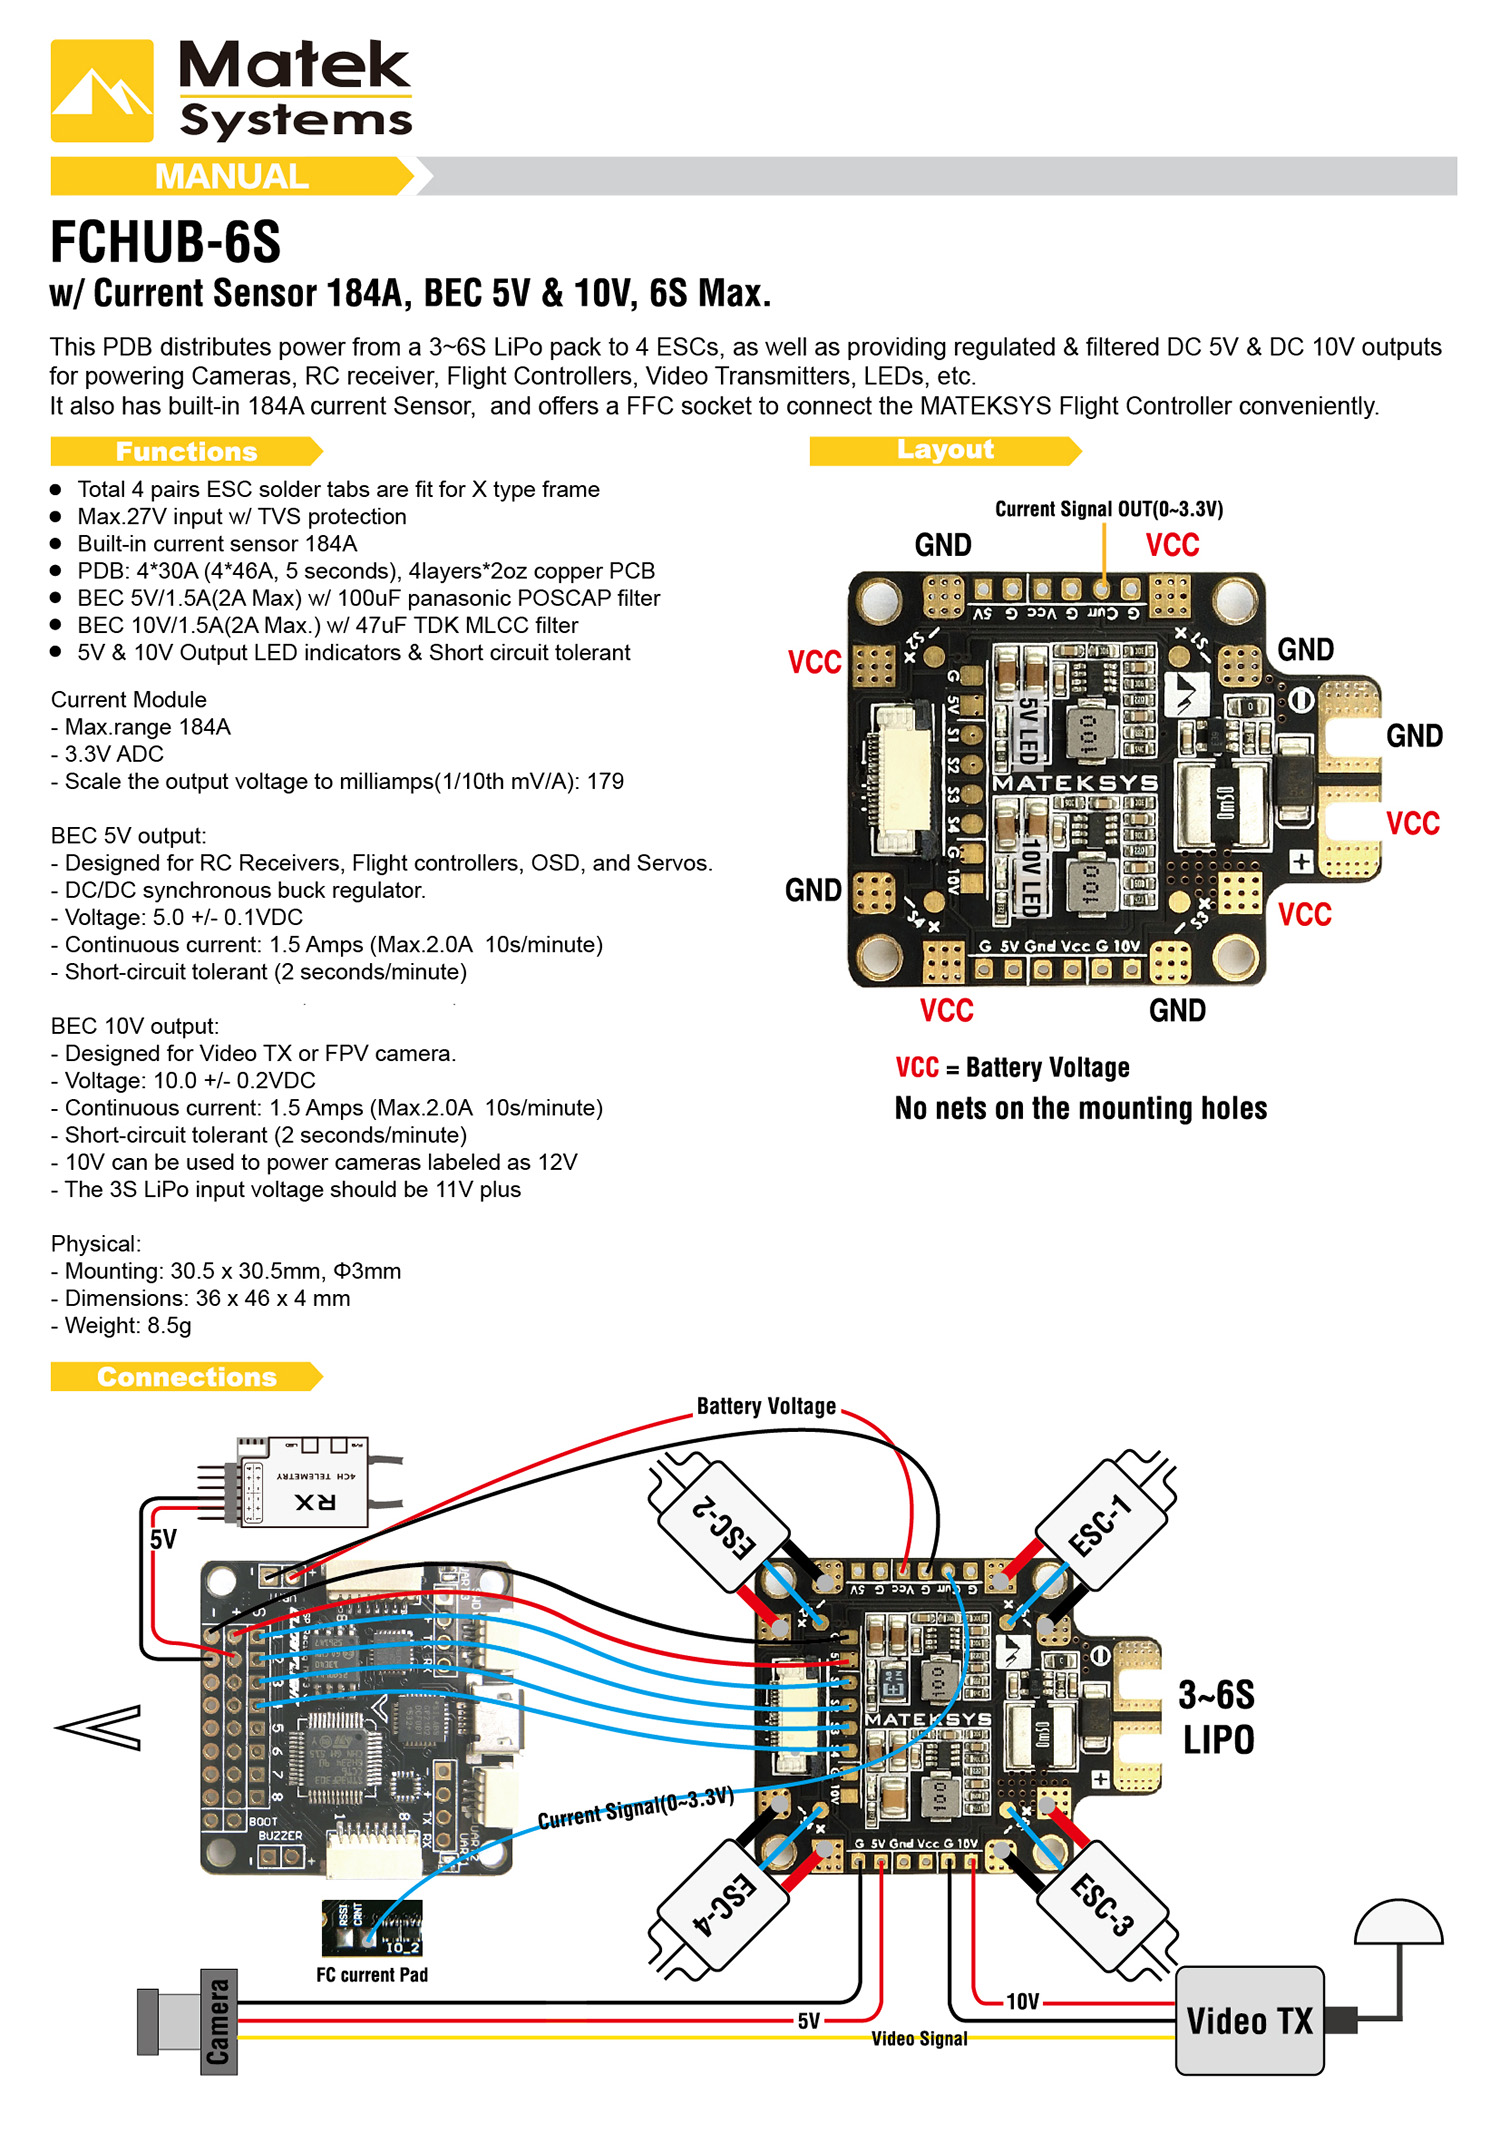 Fchub S Manual on Cc3d Esc Wiring Diagram